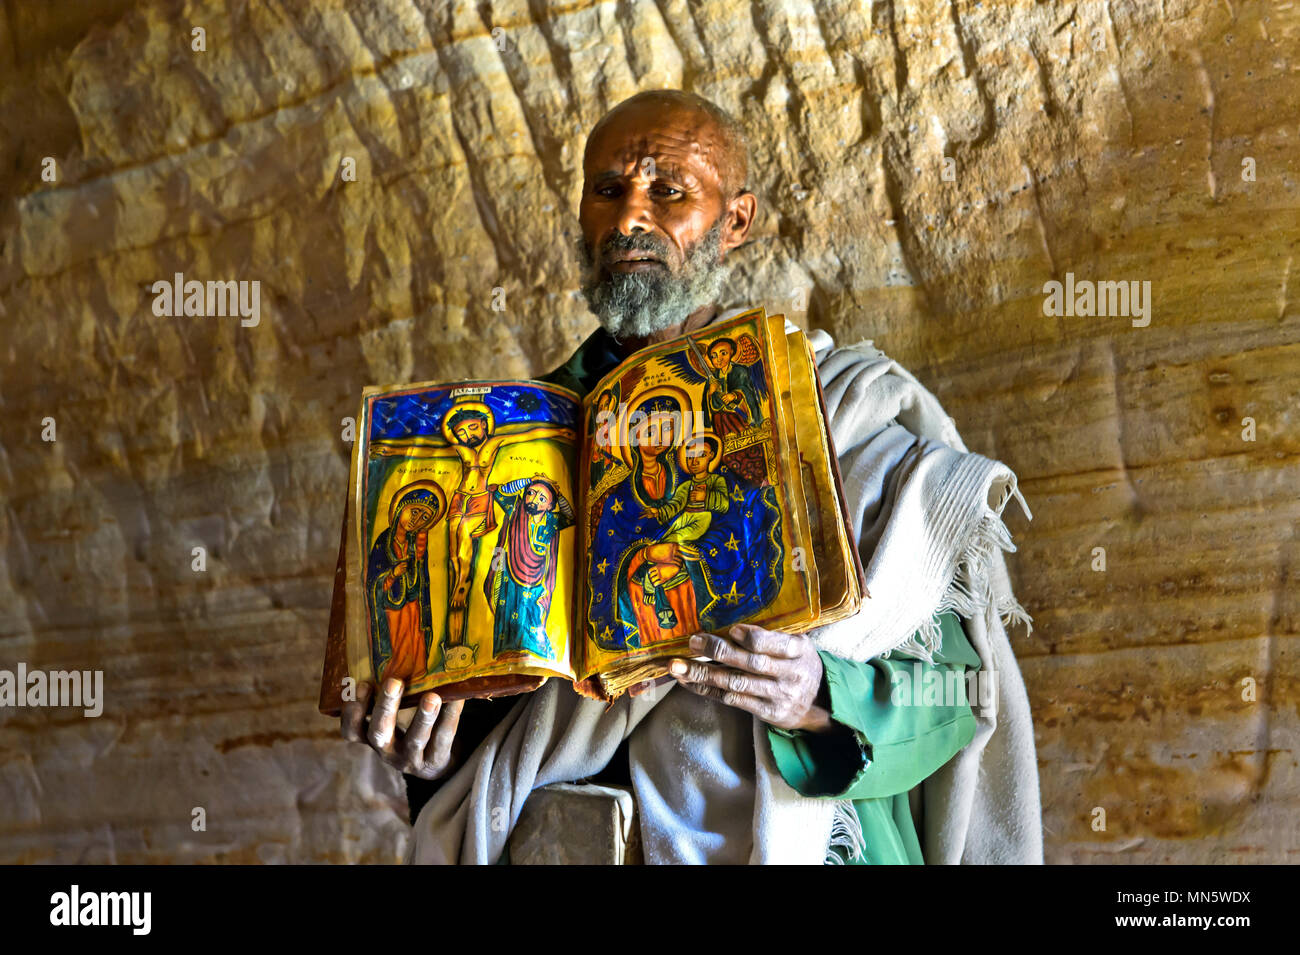 Priest of the rock-hewn church Mikael Mellehayzengi showing the book Miracles of Maria with colorful hand-painted designs on parchment,Tigray,Ethiopia - Stock Image